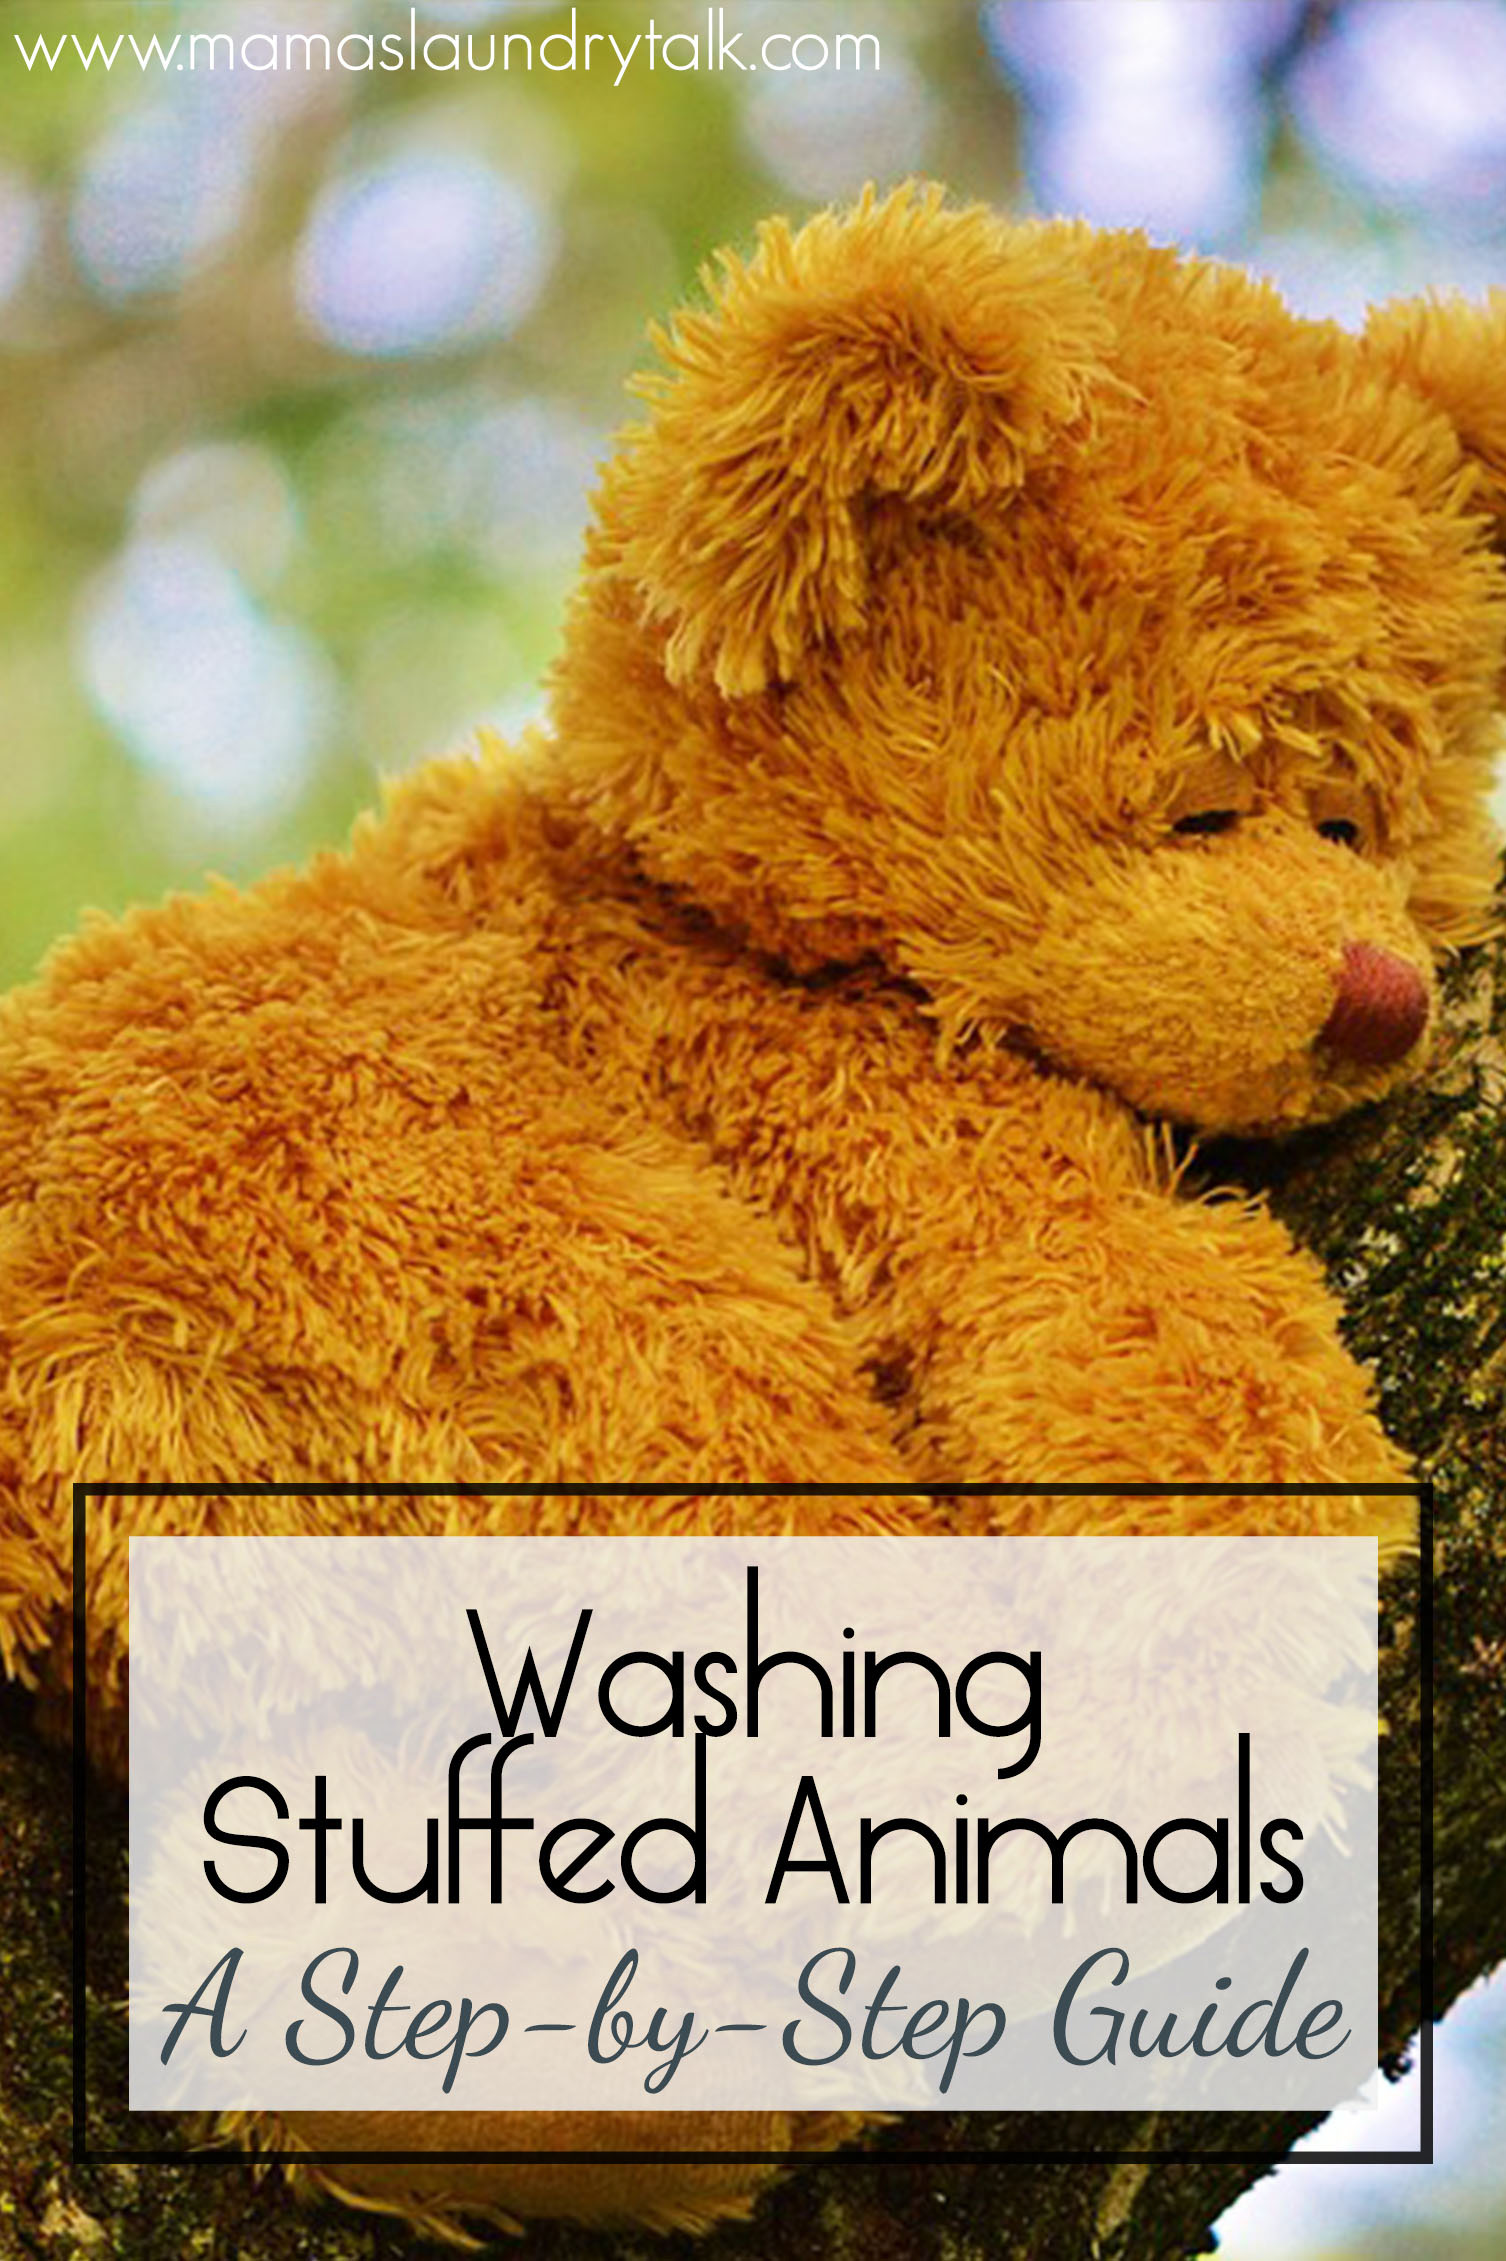 Washing Stuffed Animals Mama S Laundry Talk